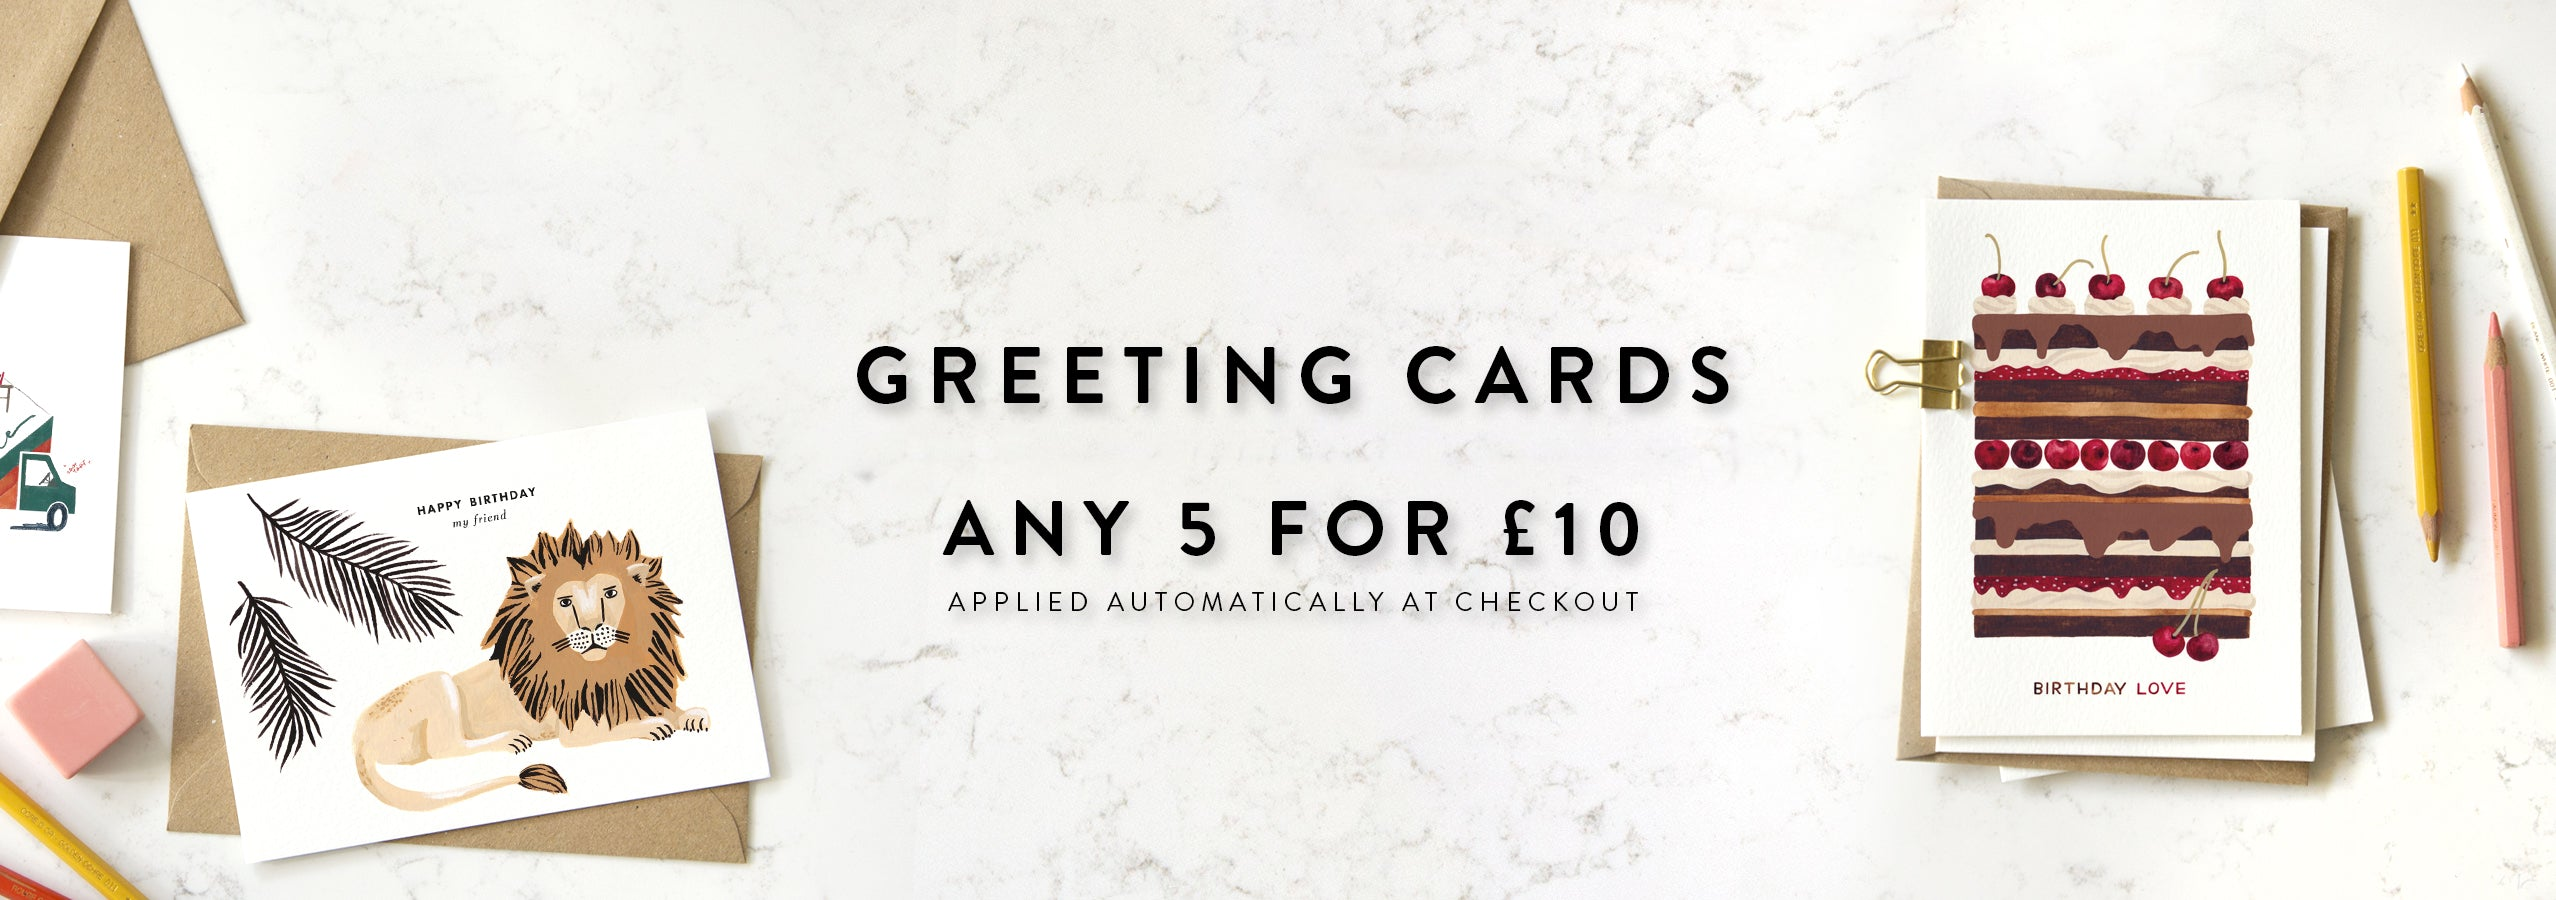 Illustrated greeting cards. Any 5 cards for £10. Discount automatically applied at checkout.